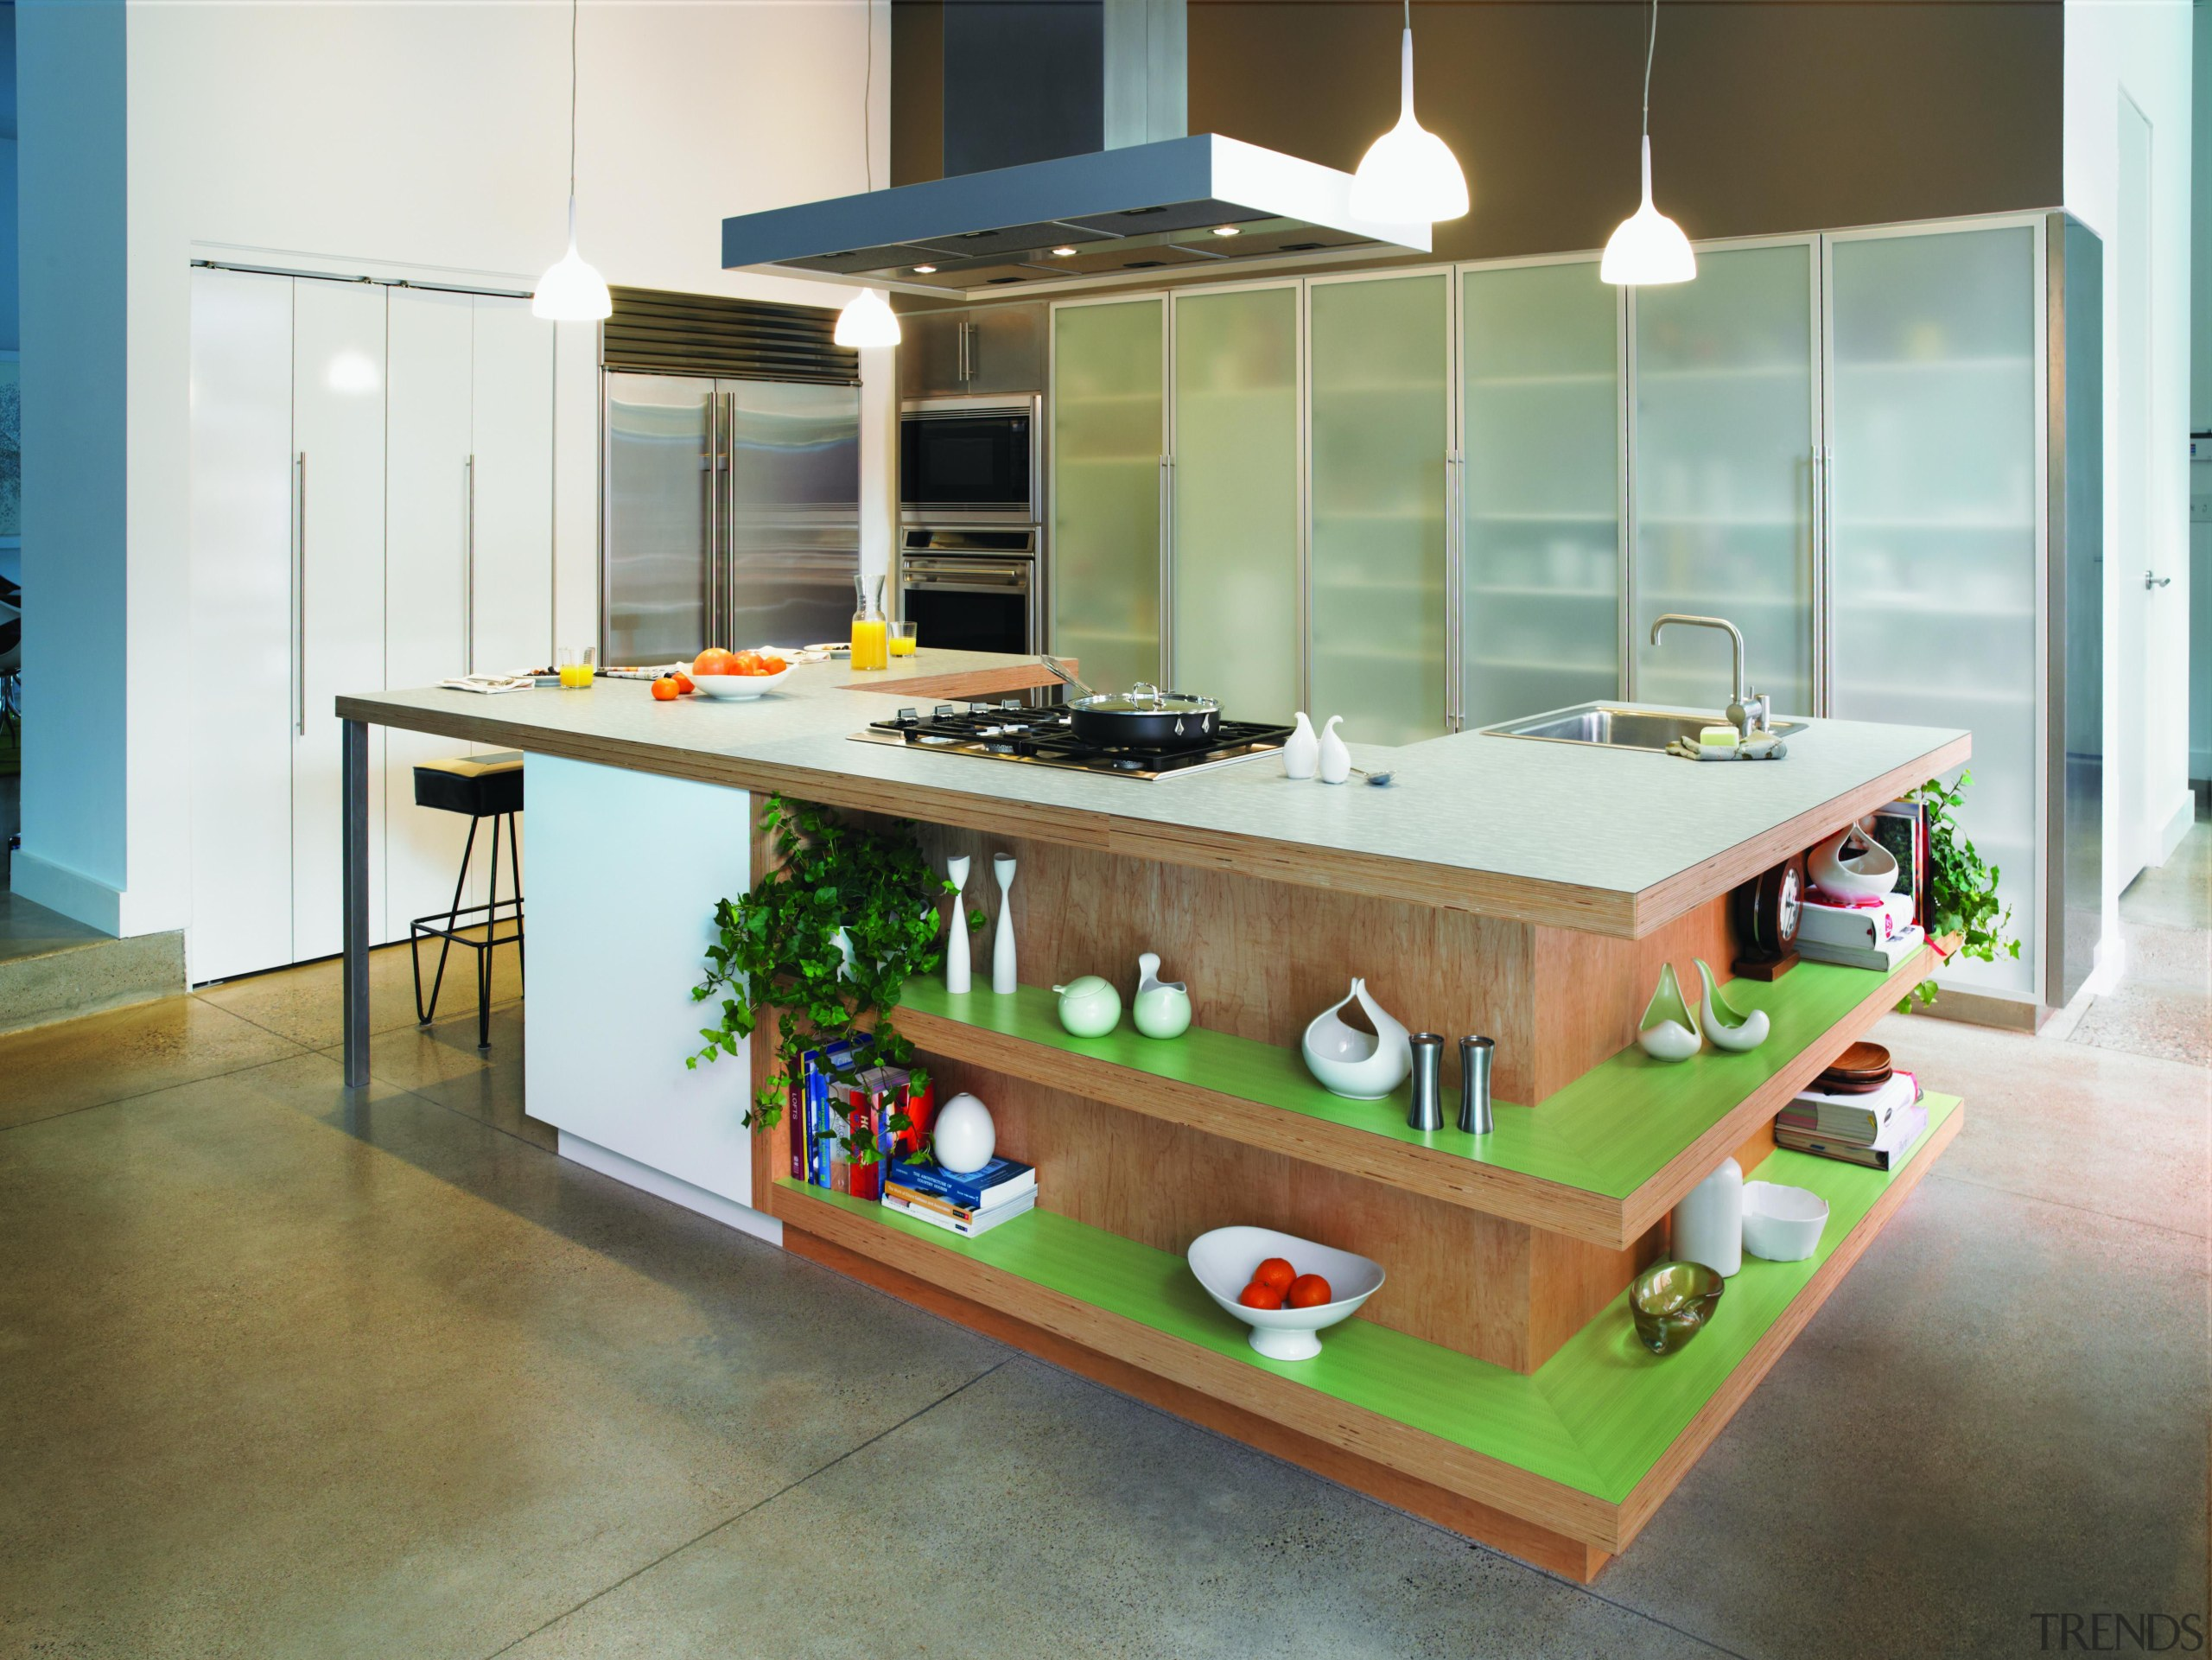 Featuring: Formica Mint Dotscreen,Formica Endless Greytone countertop, furniture, interior design, kitchen, table, white, brown